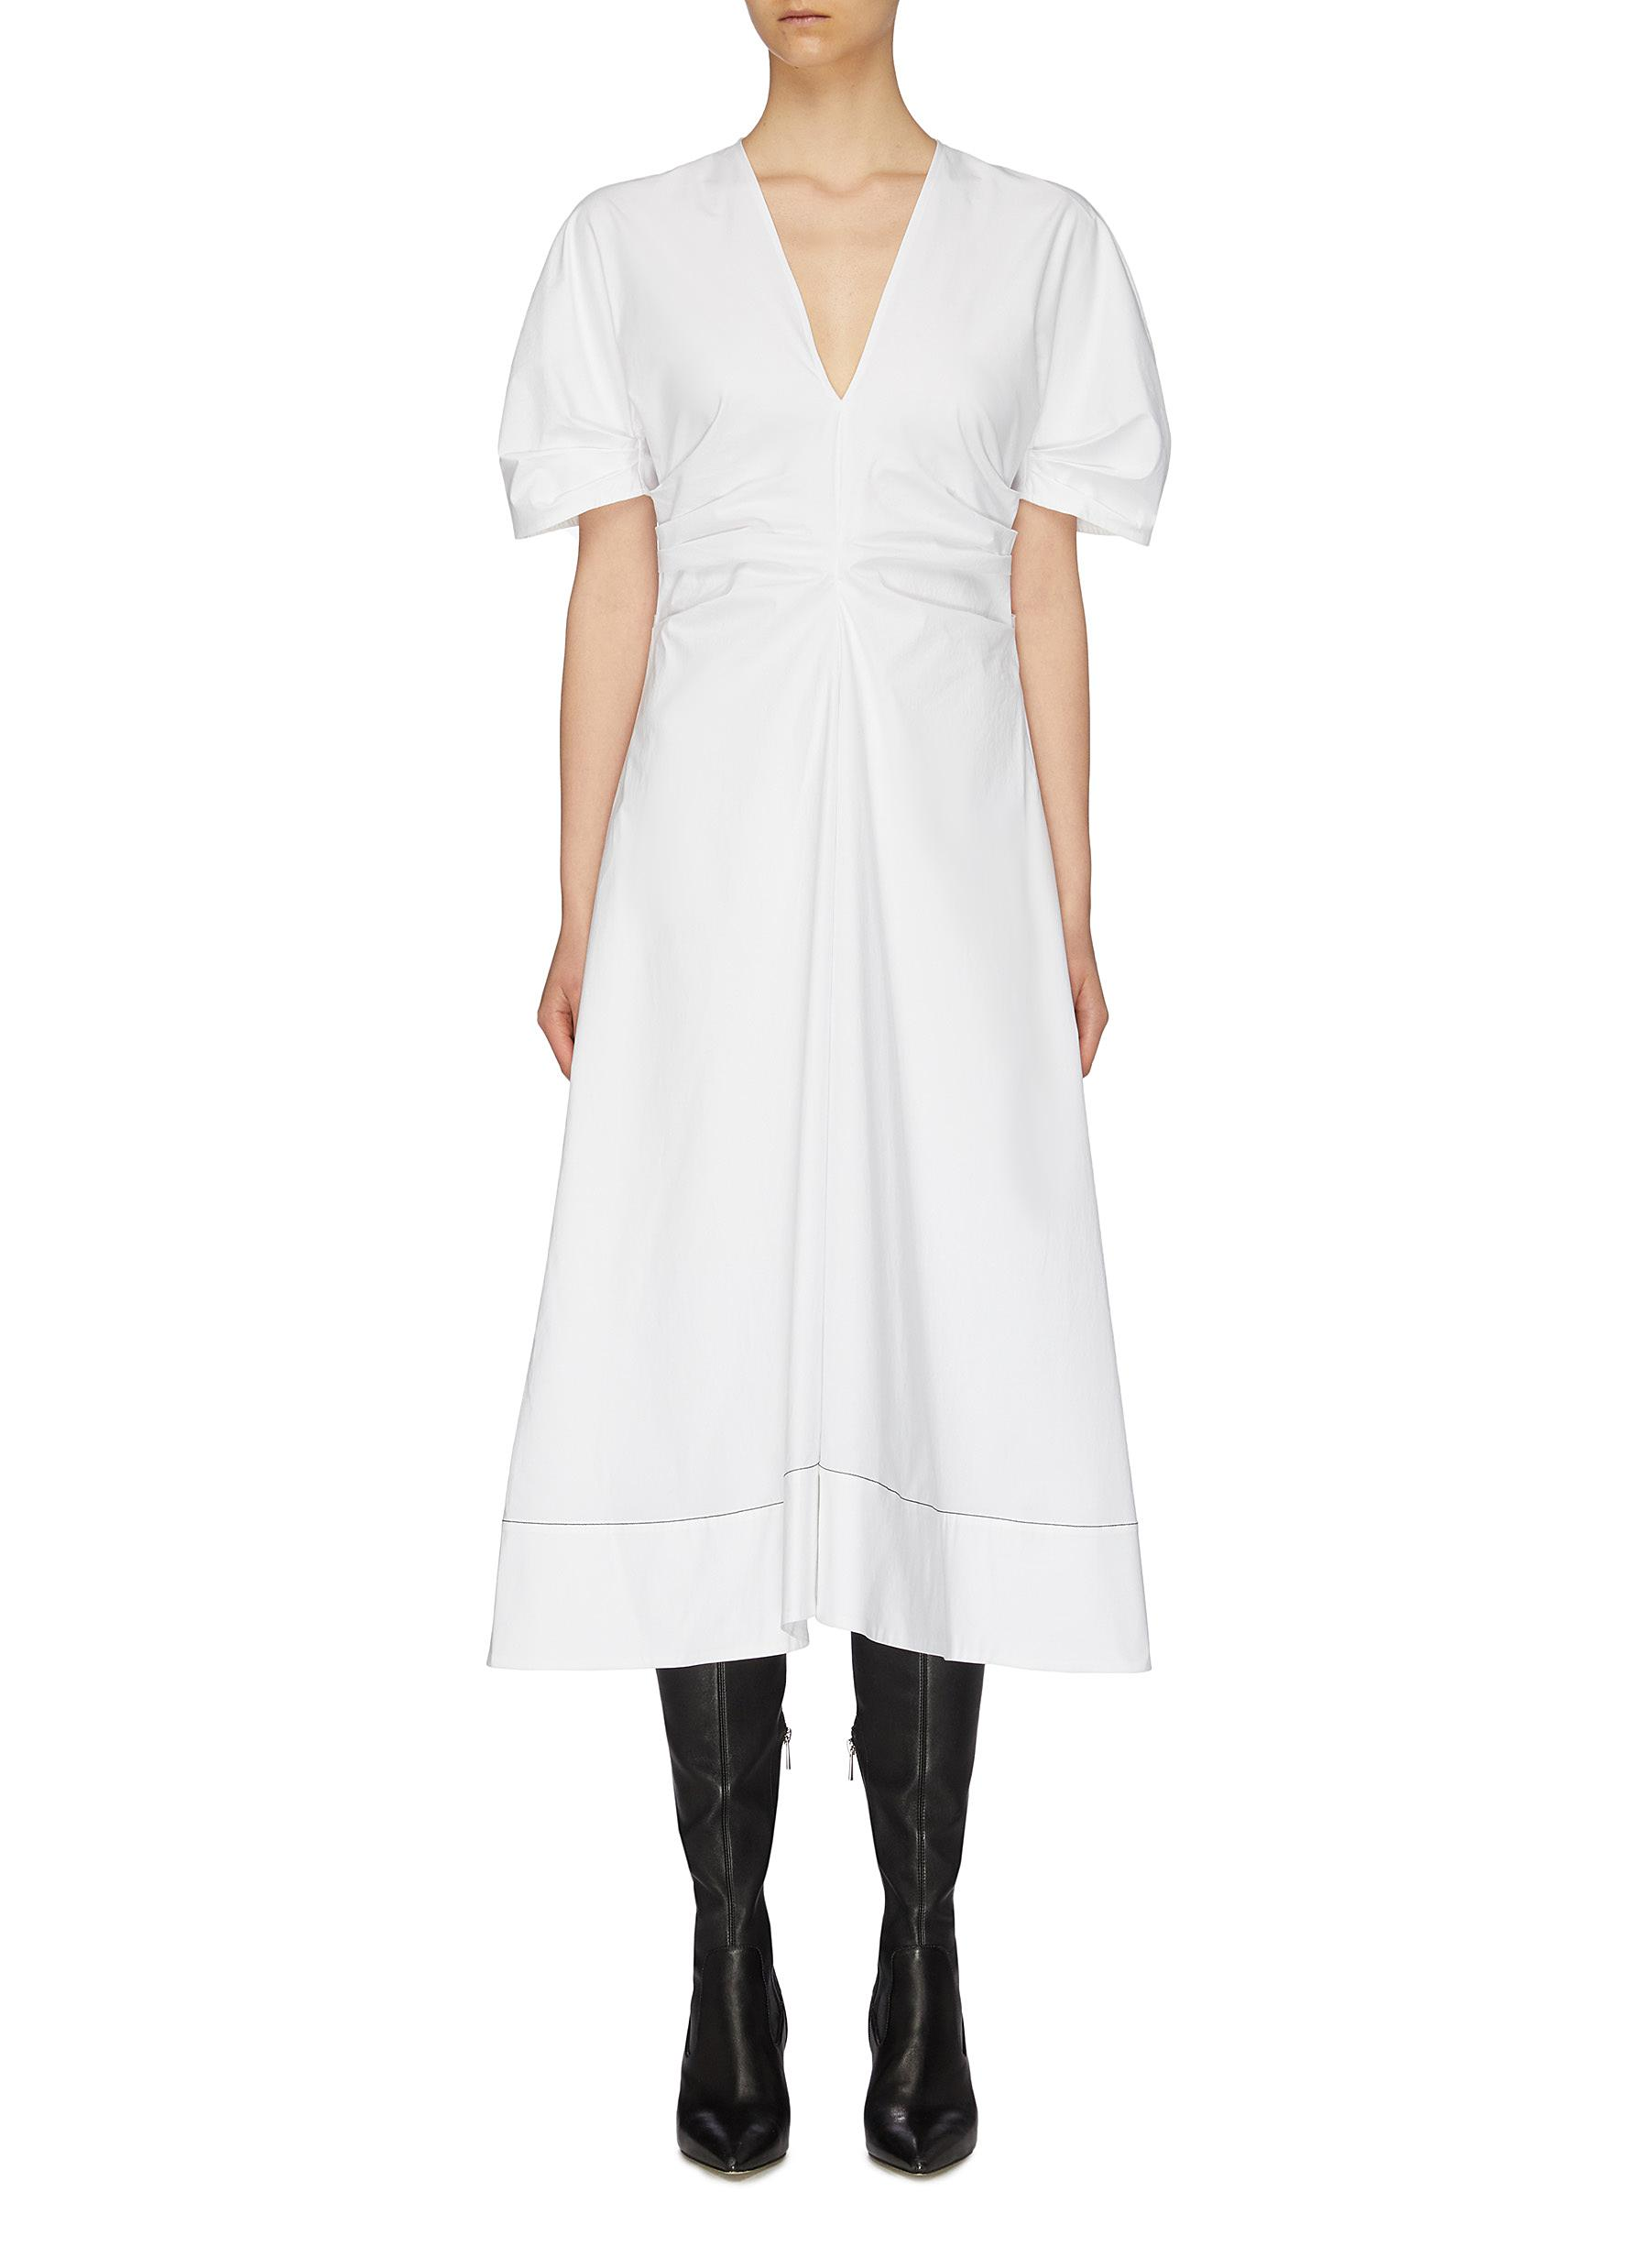 Puff sleeve ruched side V-neck dress by Proenza Schouler